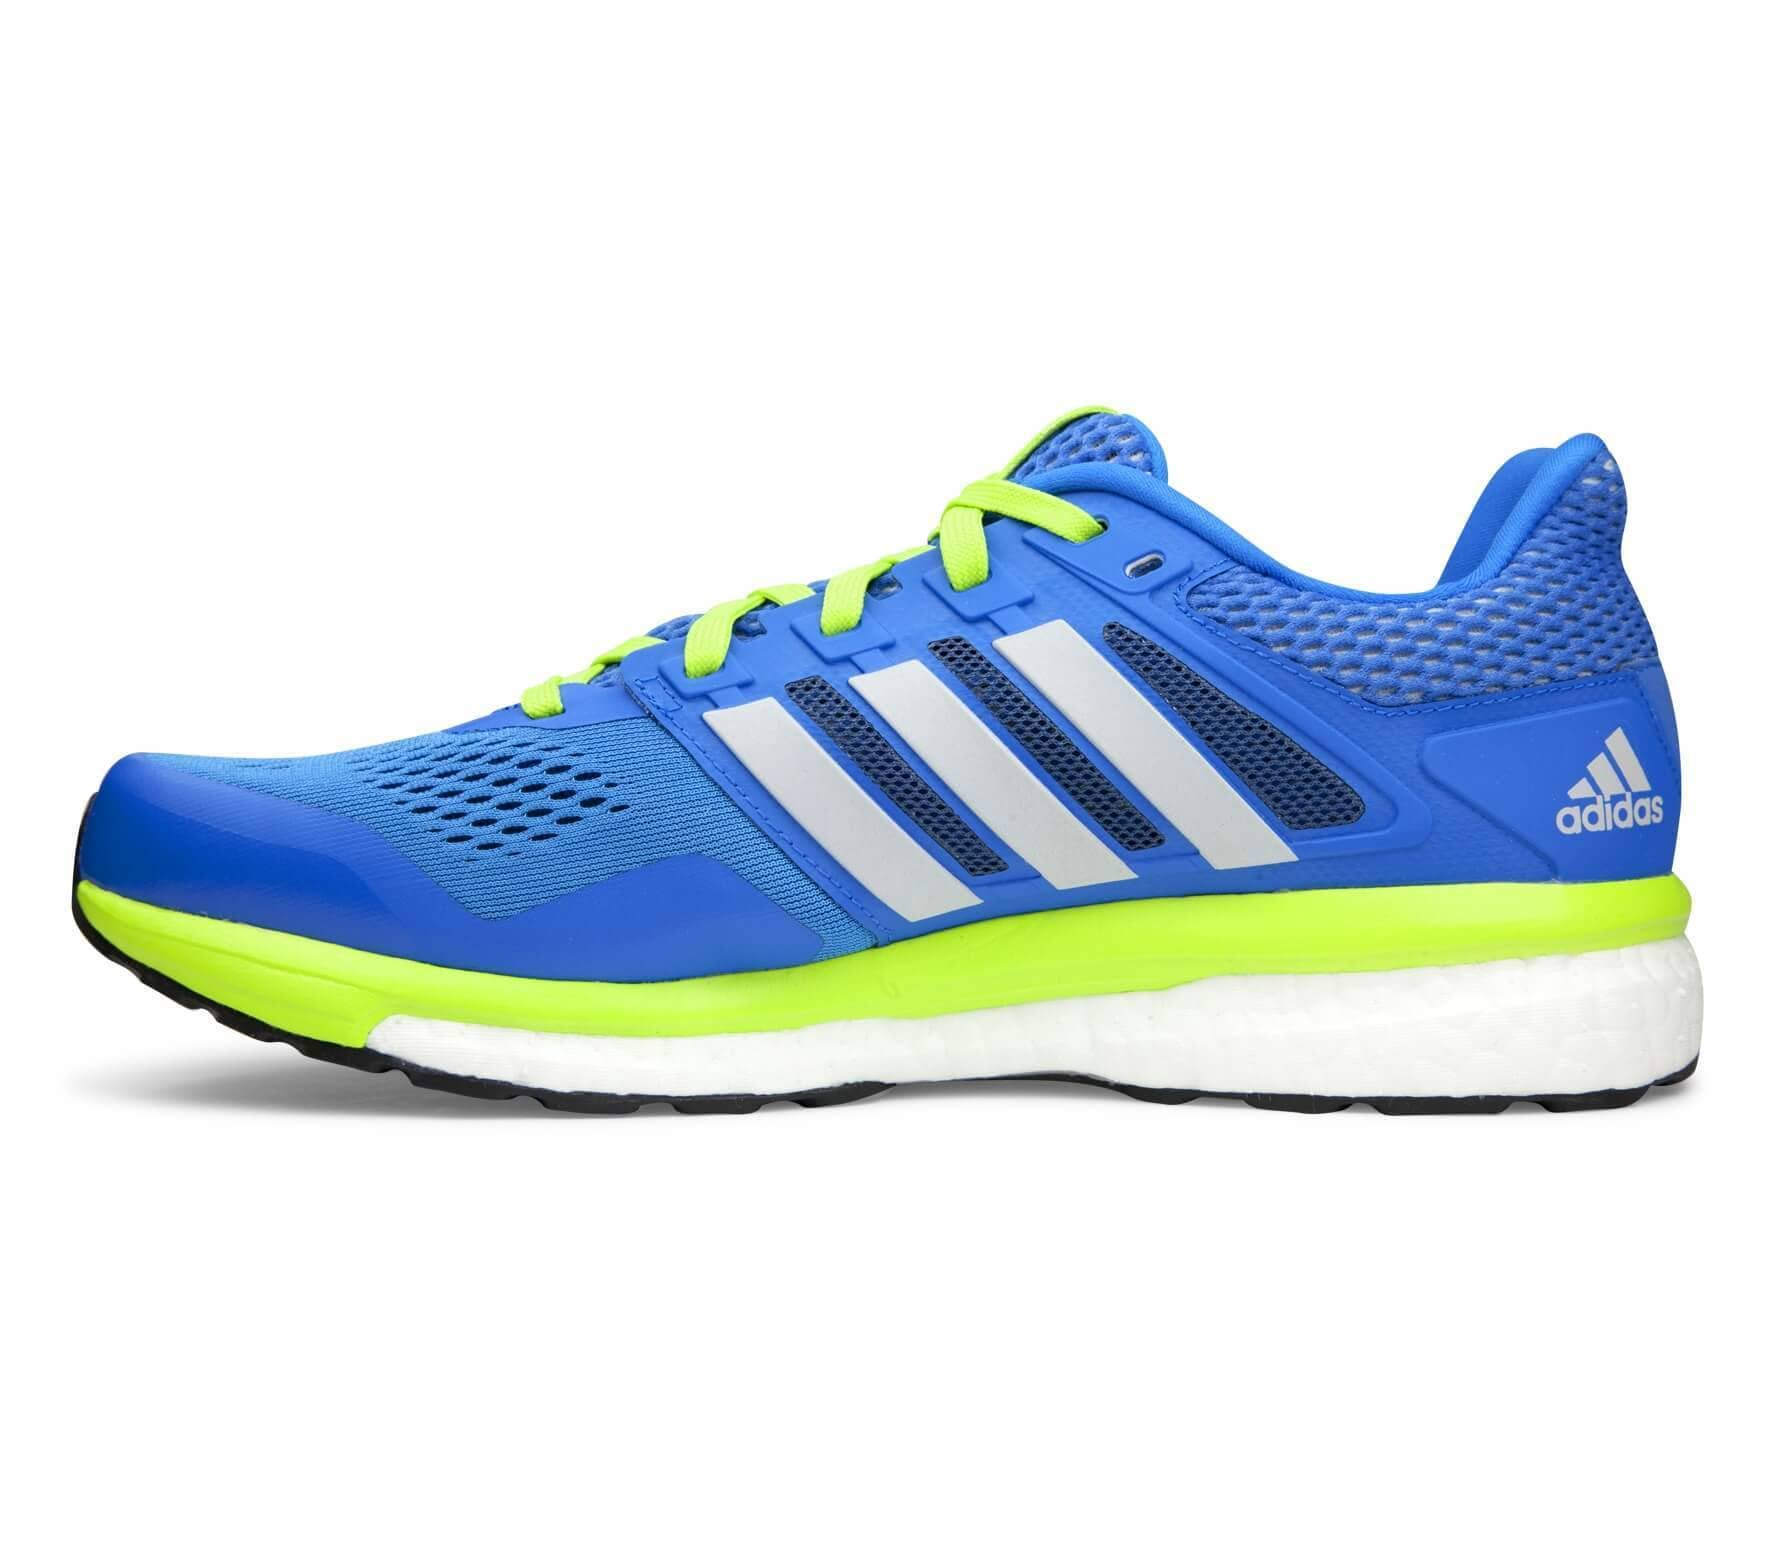 eb440808c10d5 Adidas - Supernova Glide Boost 8 Chill men s running shoes (blue light  yellow)